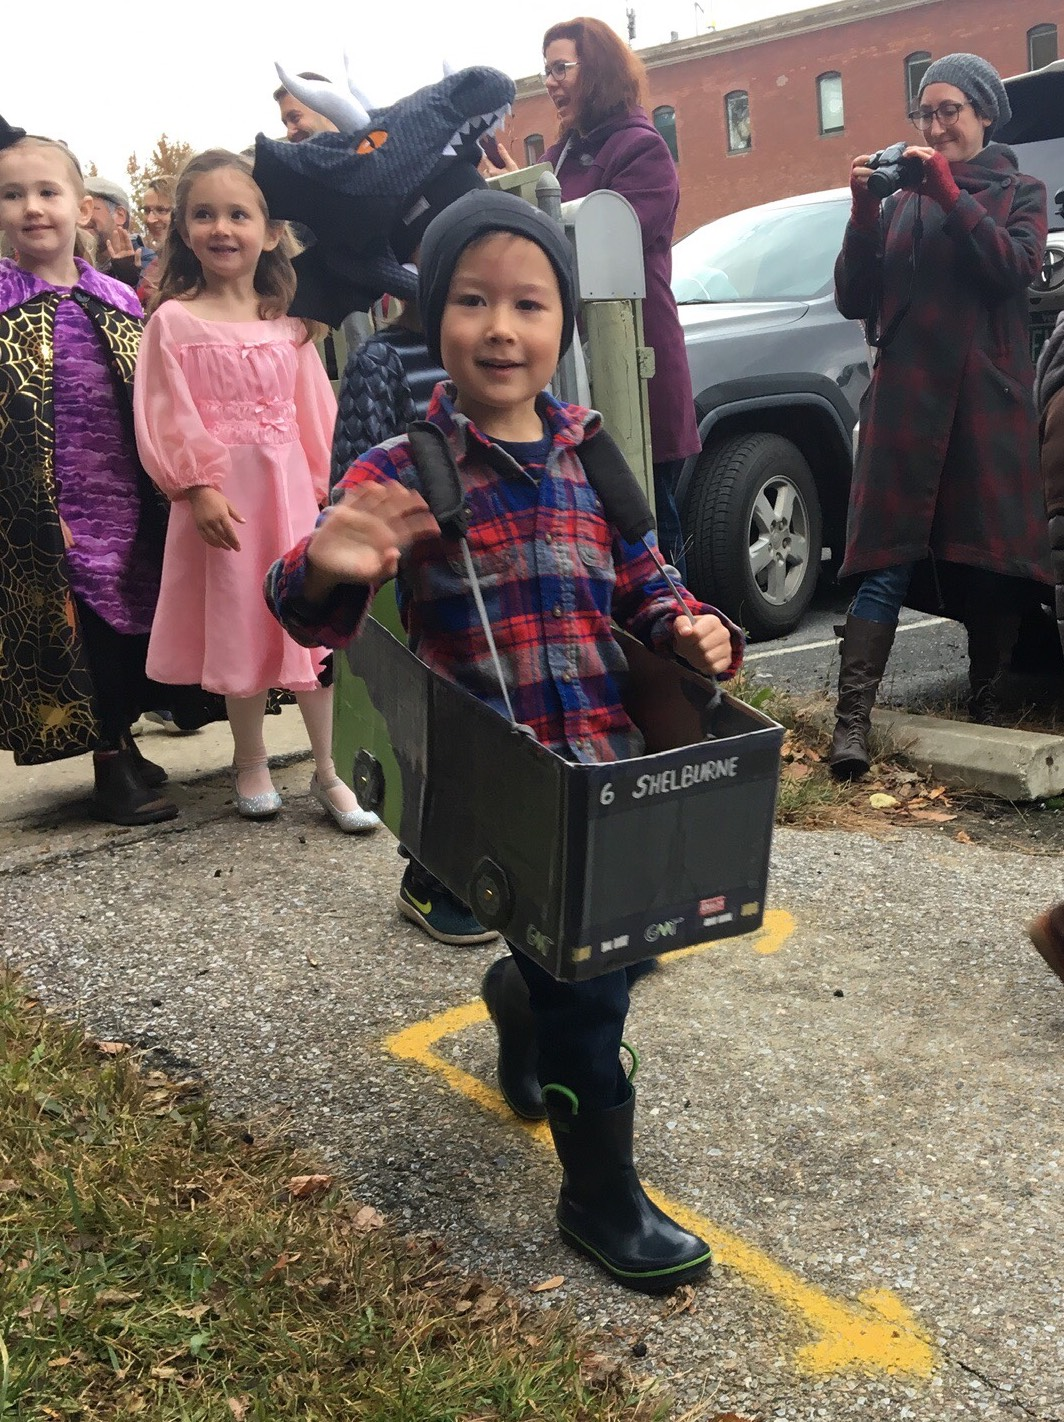 A young bus enthusiast showing off his No. 6 bus Halloween costume